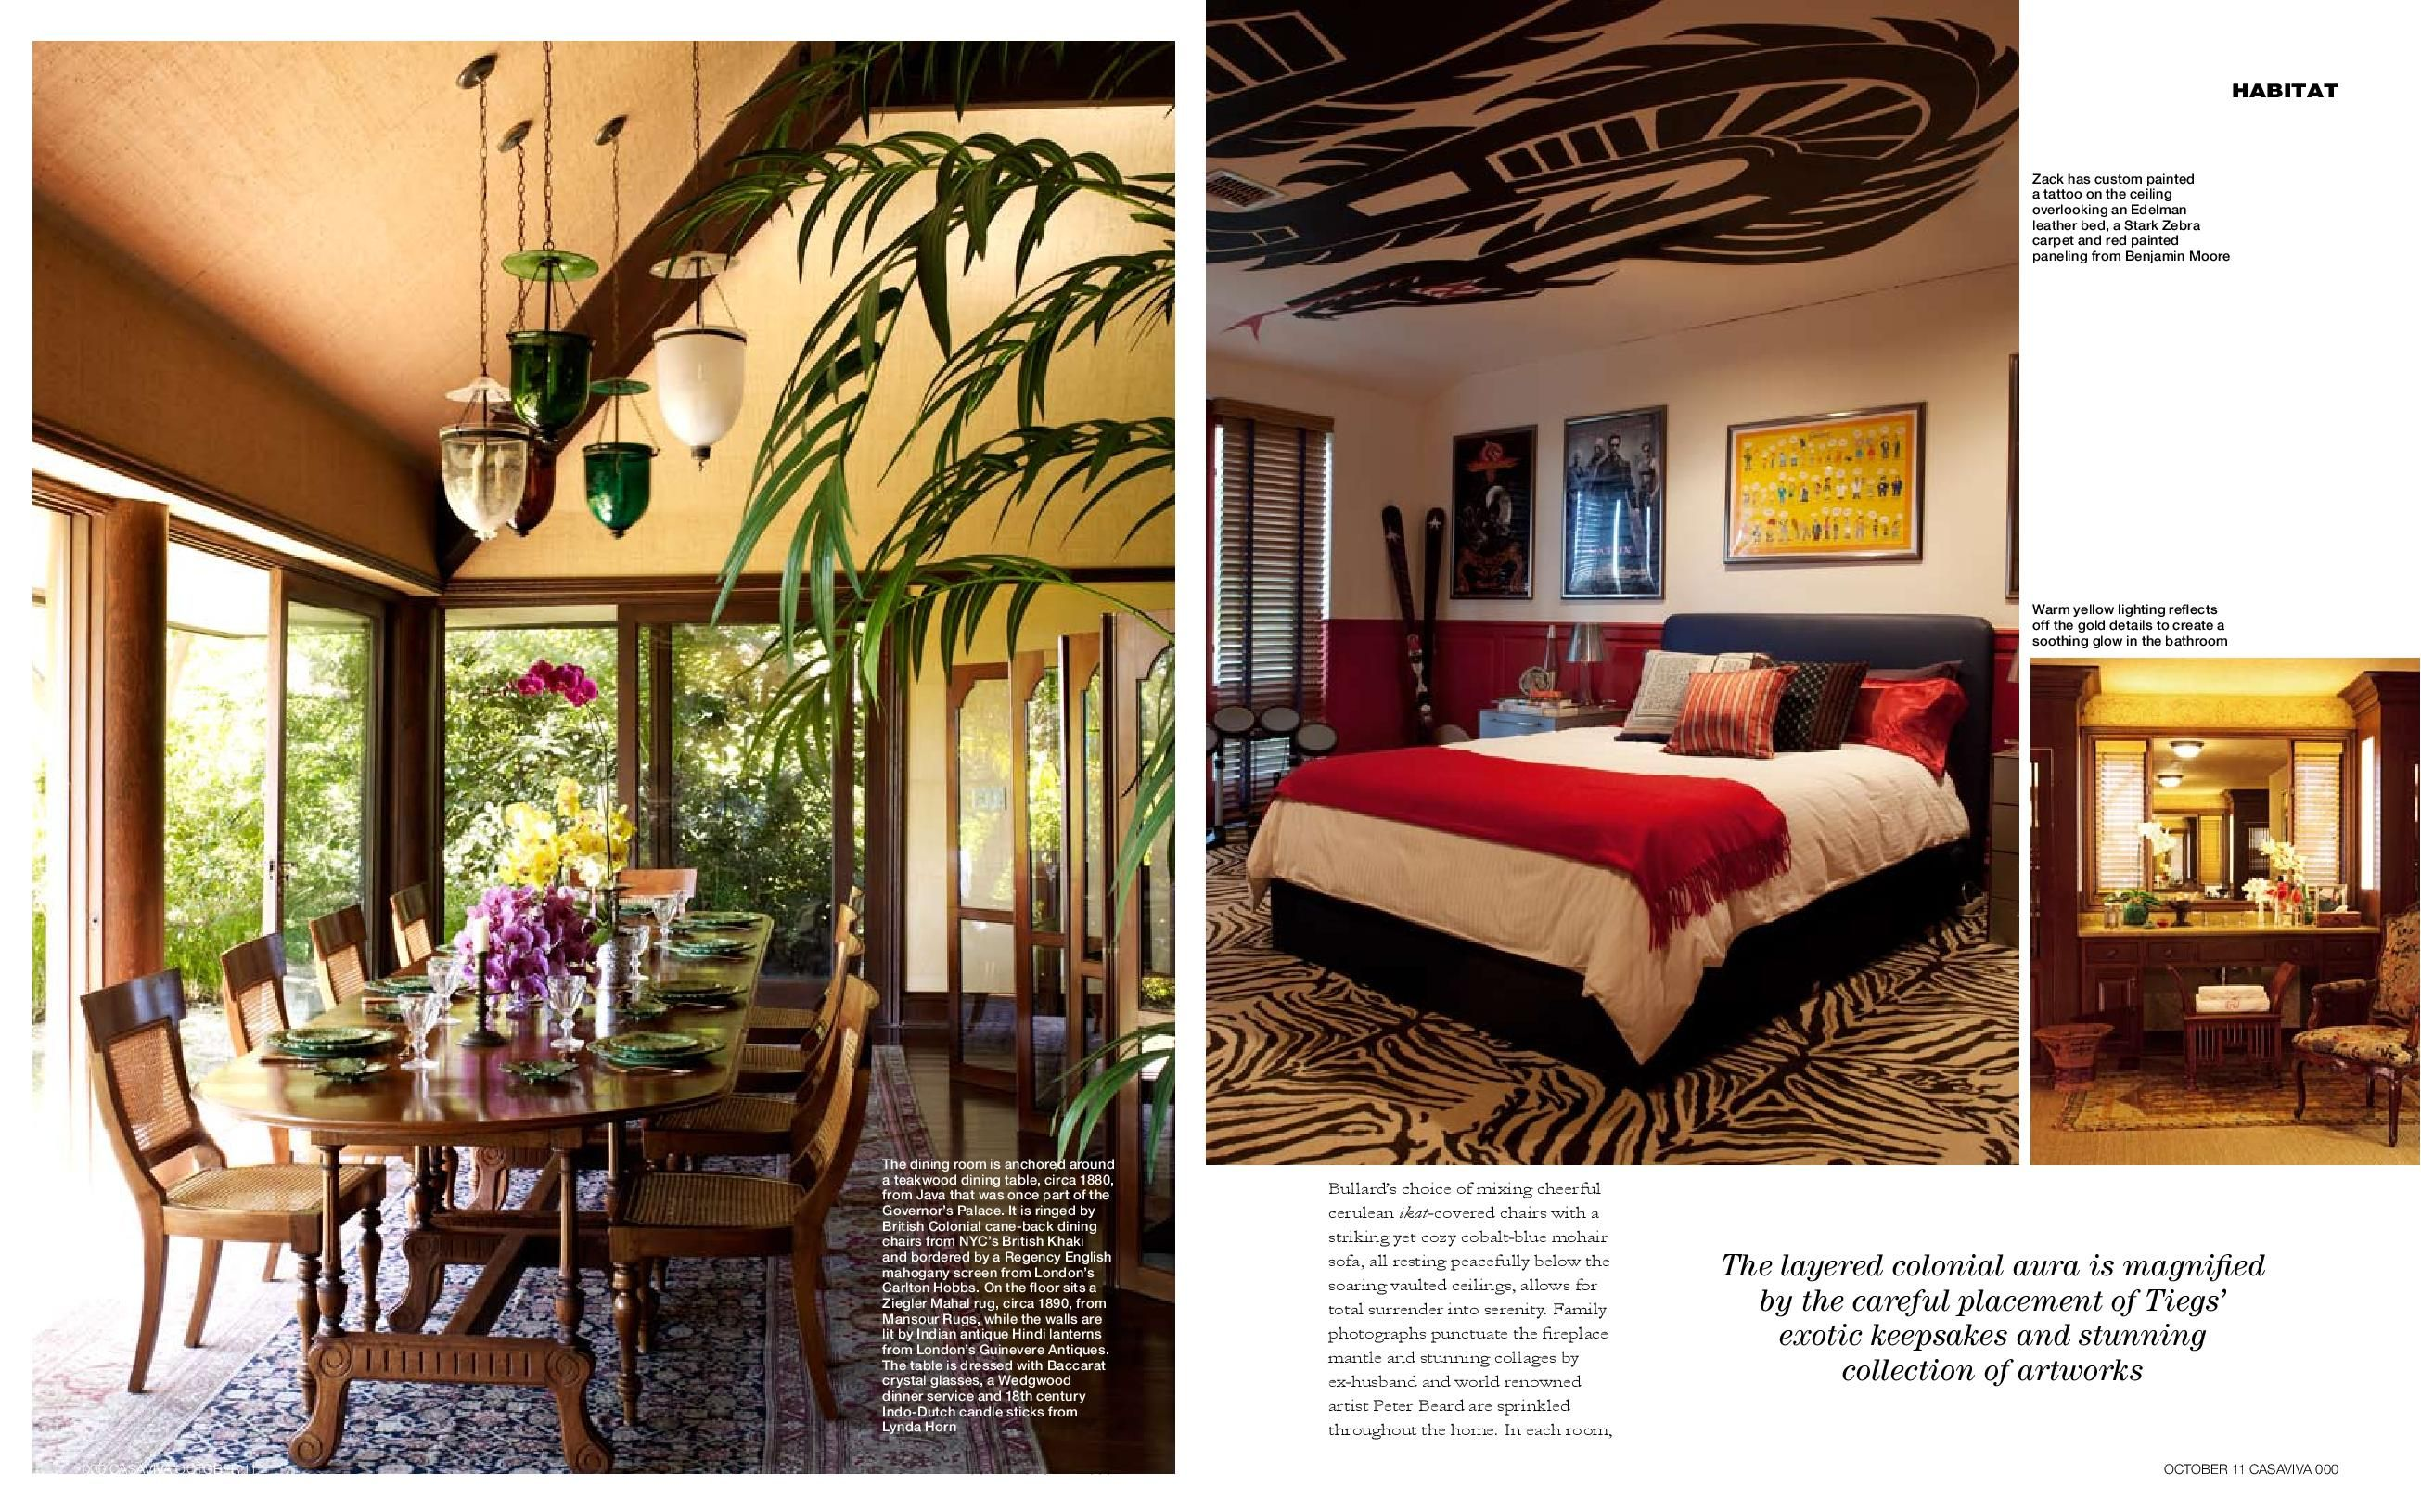 Cheryl Tiegs Bali inspired sanctuary by Martyn Lawrence-Bullarnd's on cool architecture design, 1890s interior design, 1920s home interior design, bathroom design, 1920 home decor and design, old cypress kitchens by design,